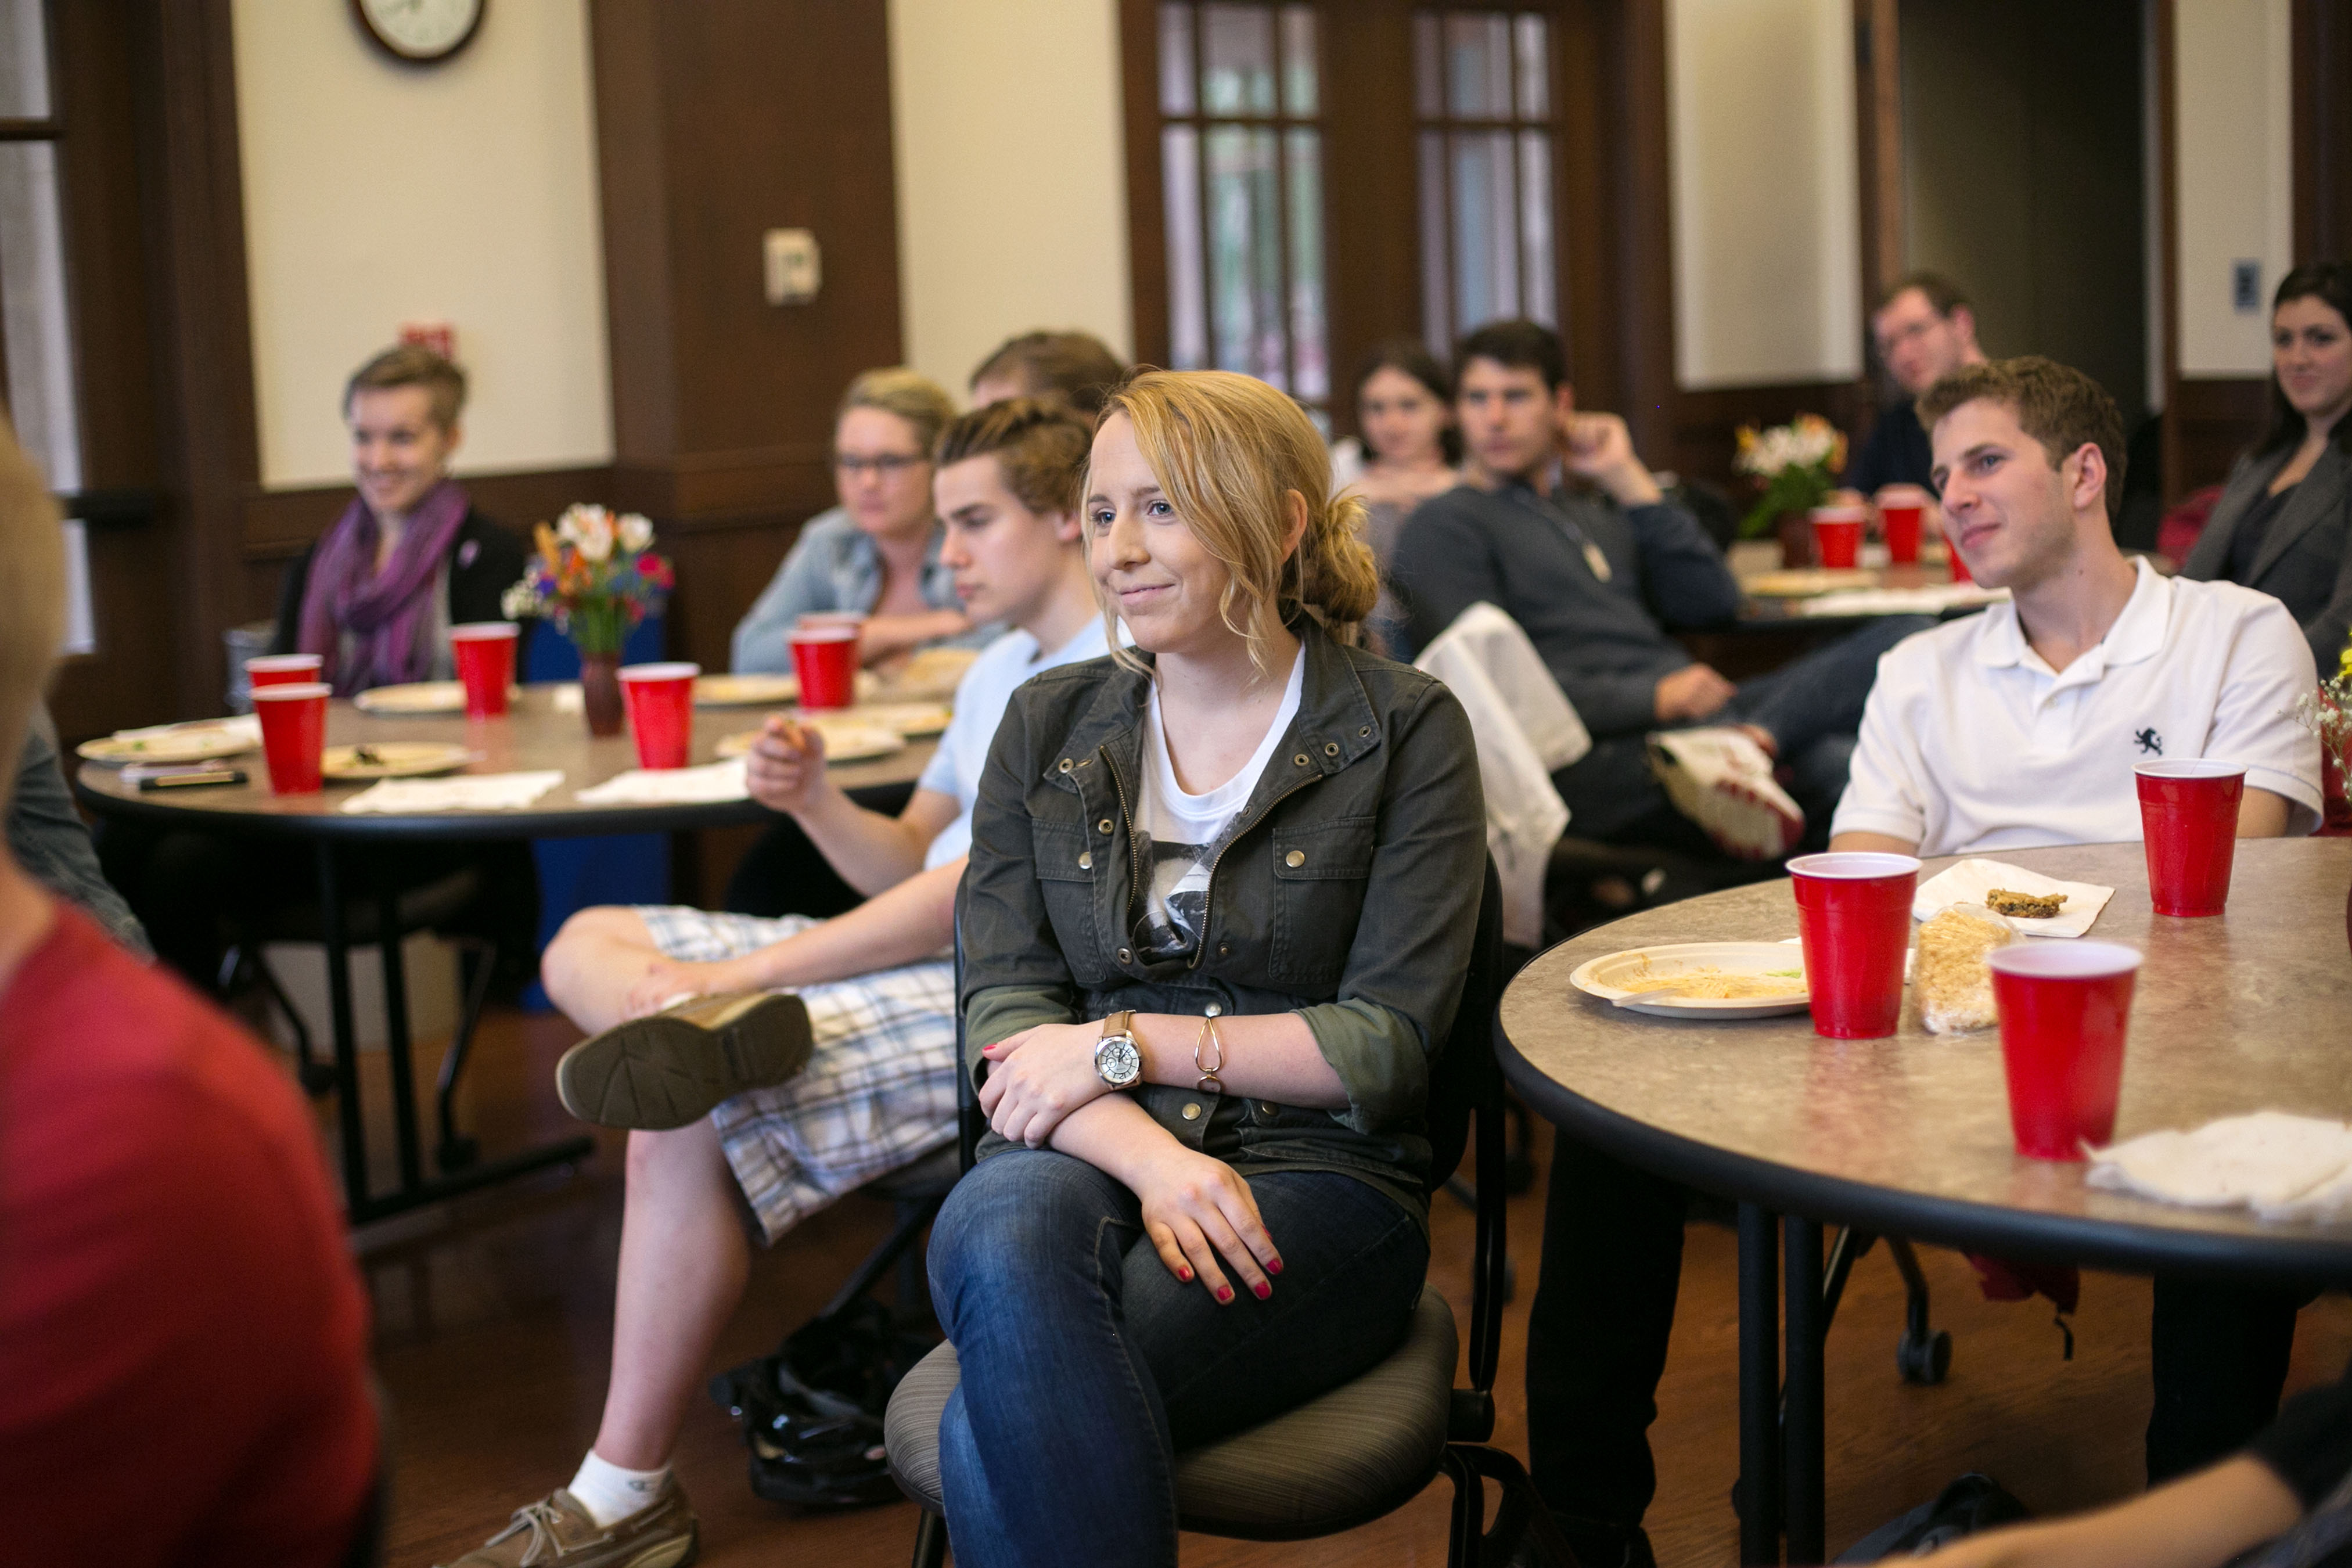 Public College Honors Programs Give Students VIP Treatment ...